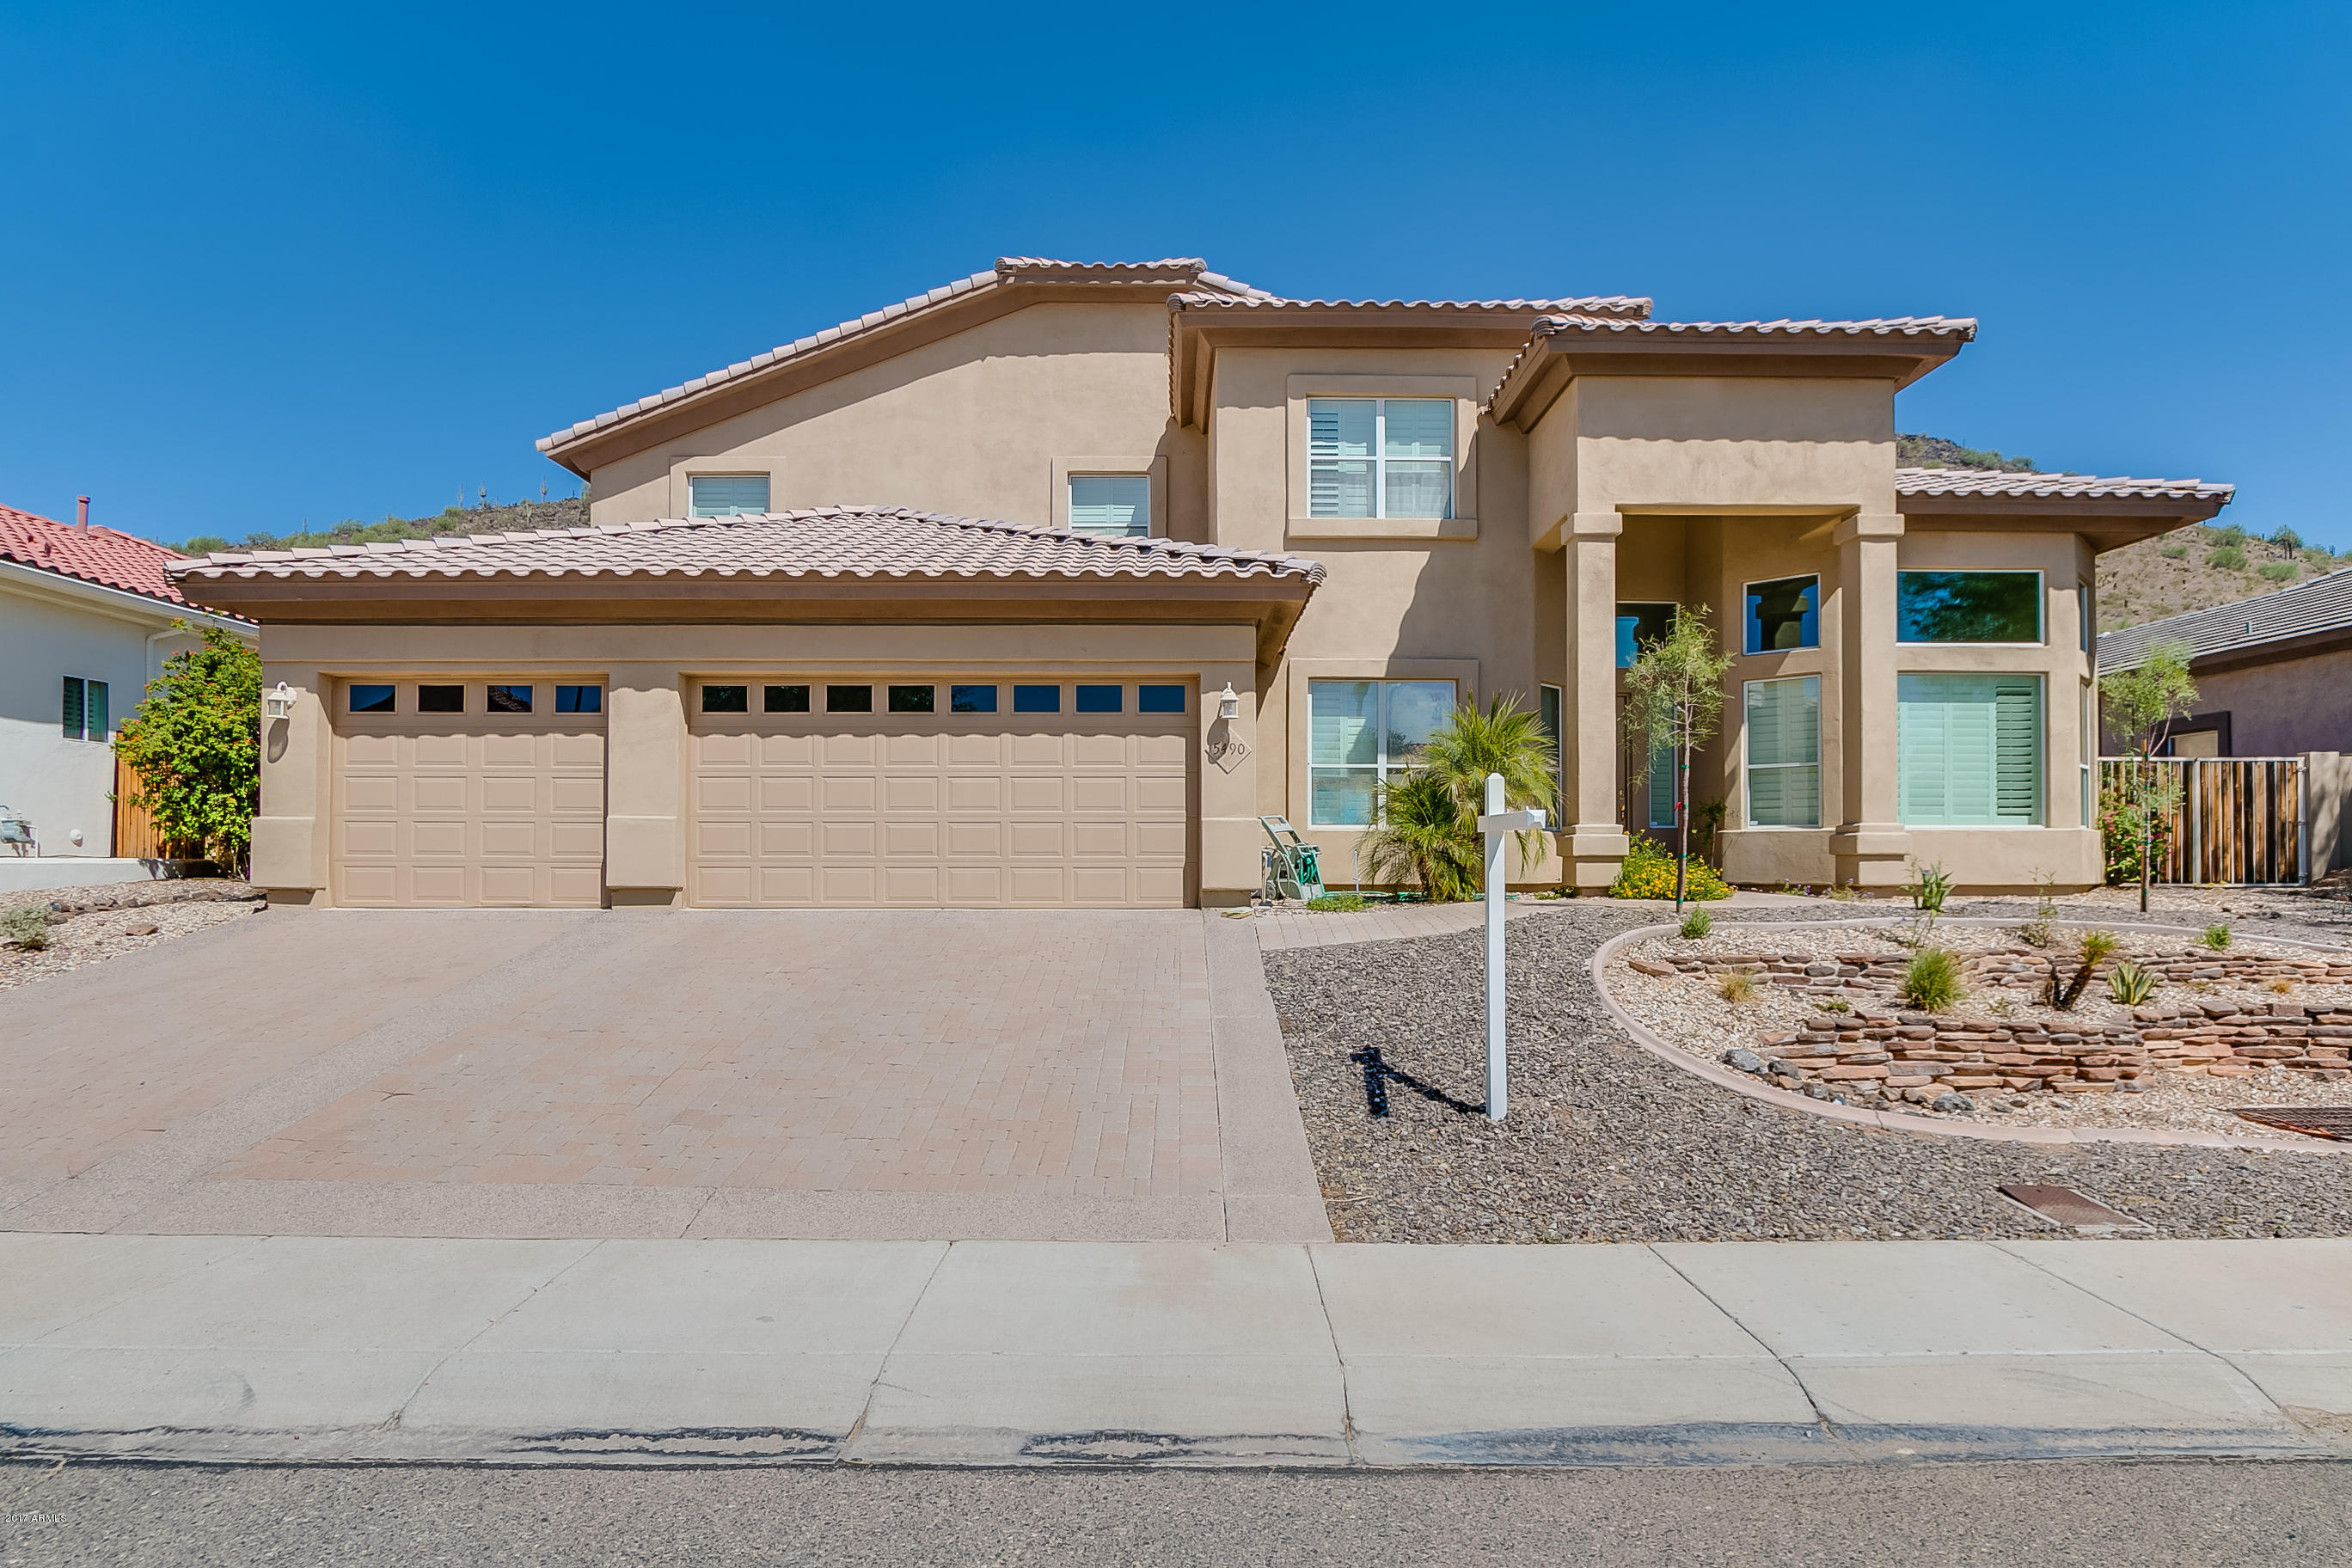 Photo of 5490 W MELINDA Lane, Glendale, AZ 85308